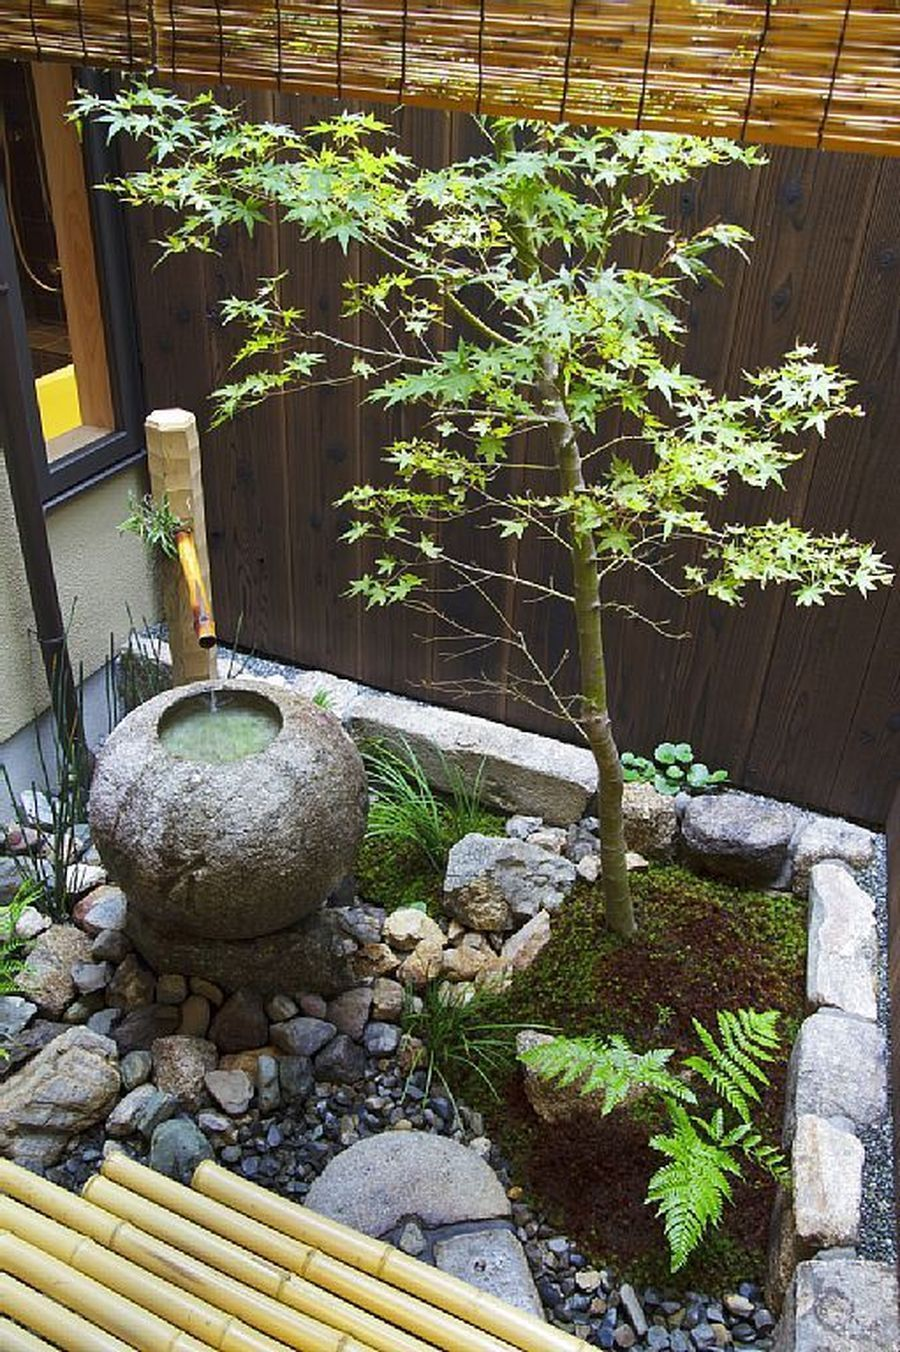 Peacefully Japanese Zen Gardens Landscape for Your Inspirations #zengardens